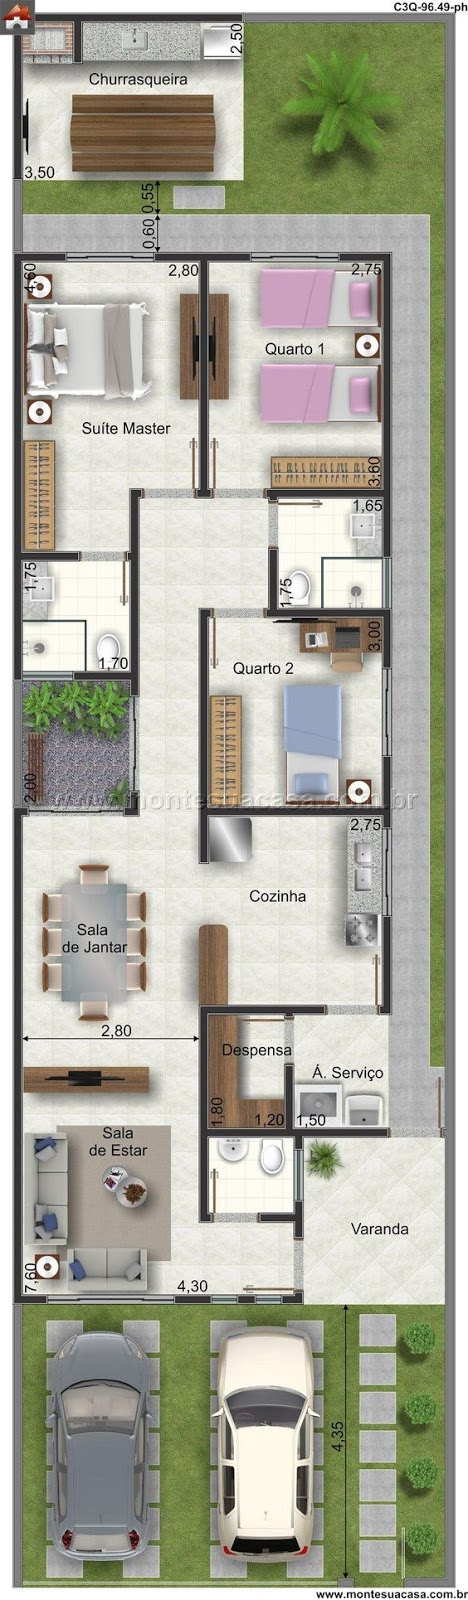 luxury villas tuscany 3 bedrooms, double garage, and large green area